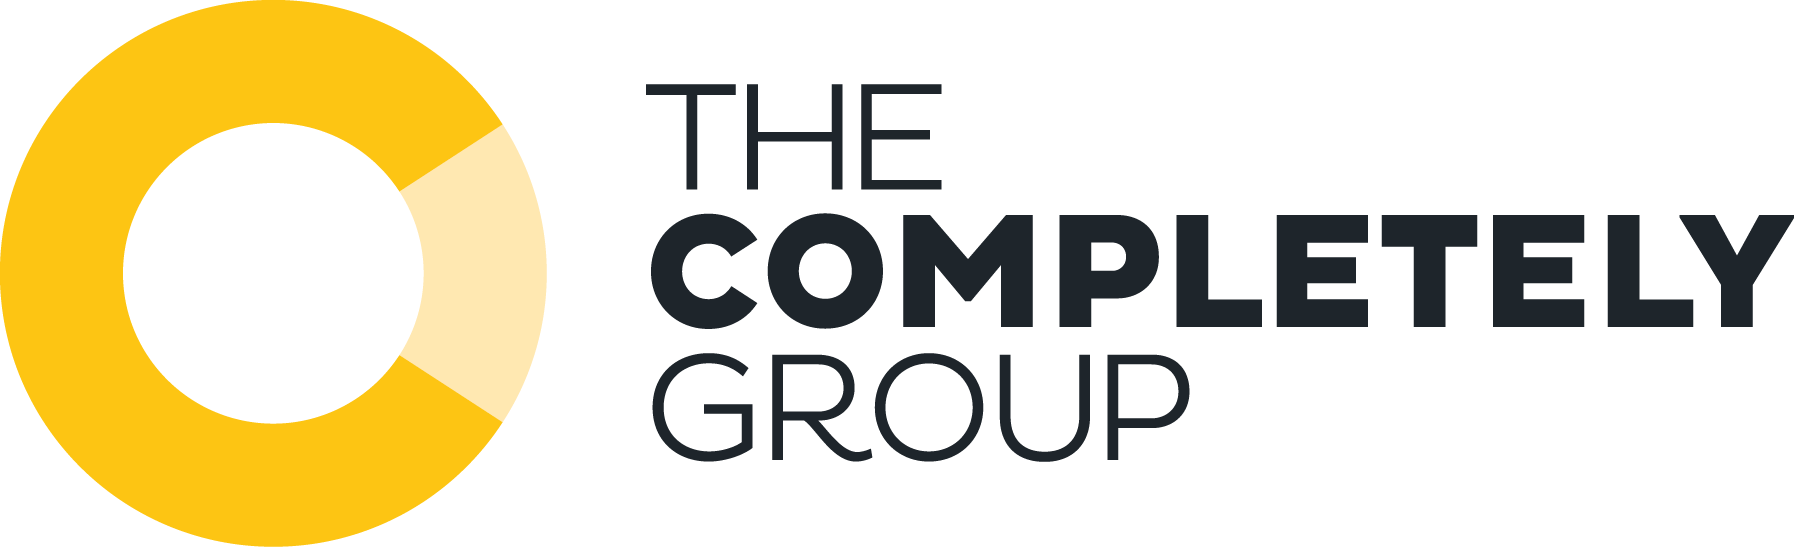 The_COMPLETELY_Group_Horizontal_Outline.png